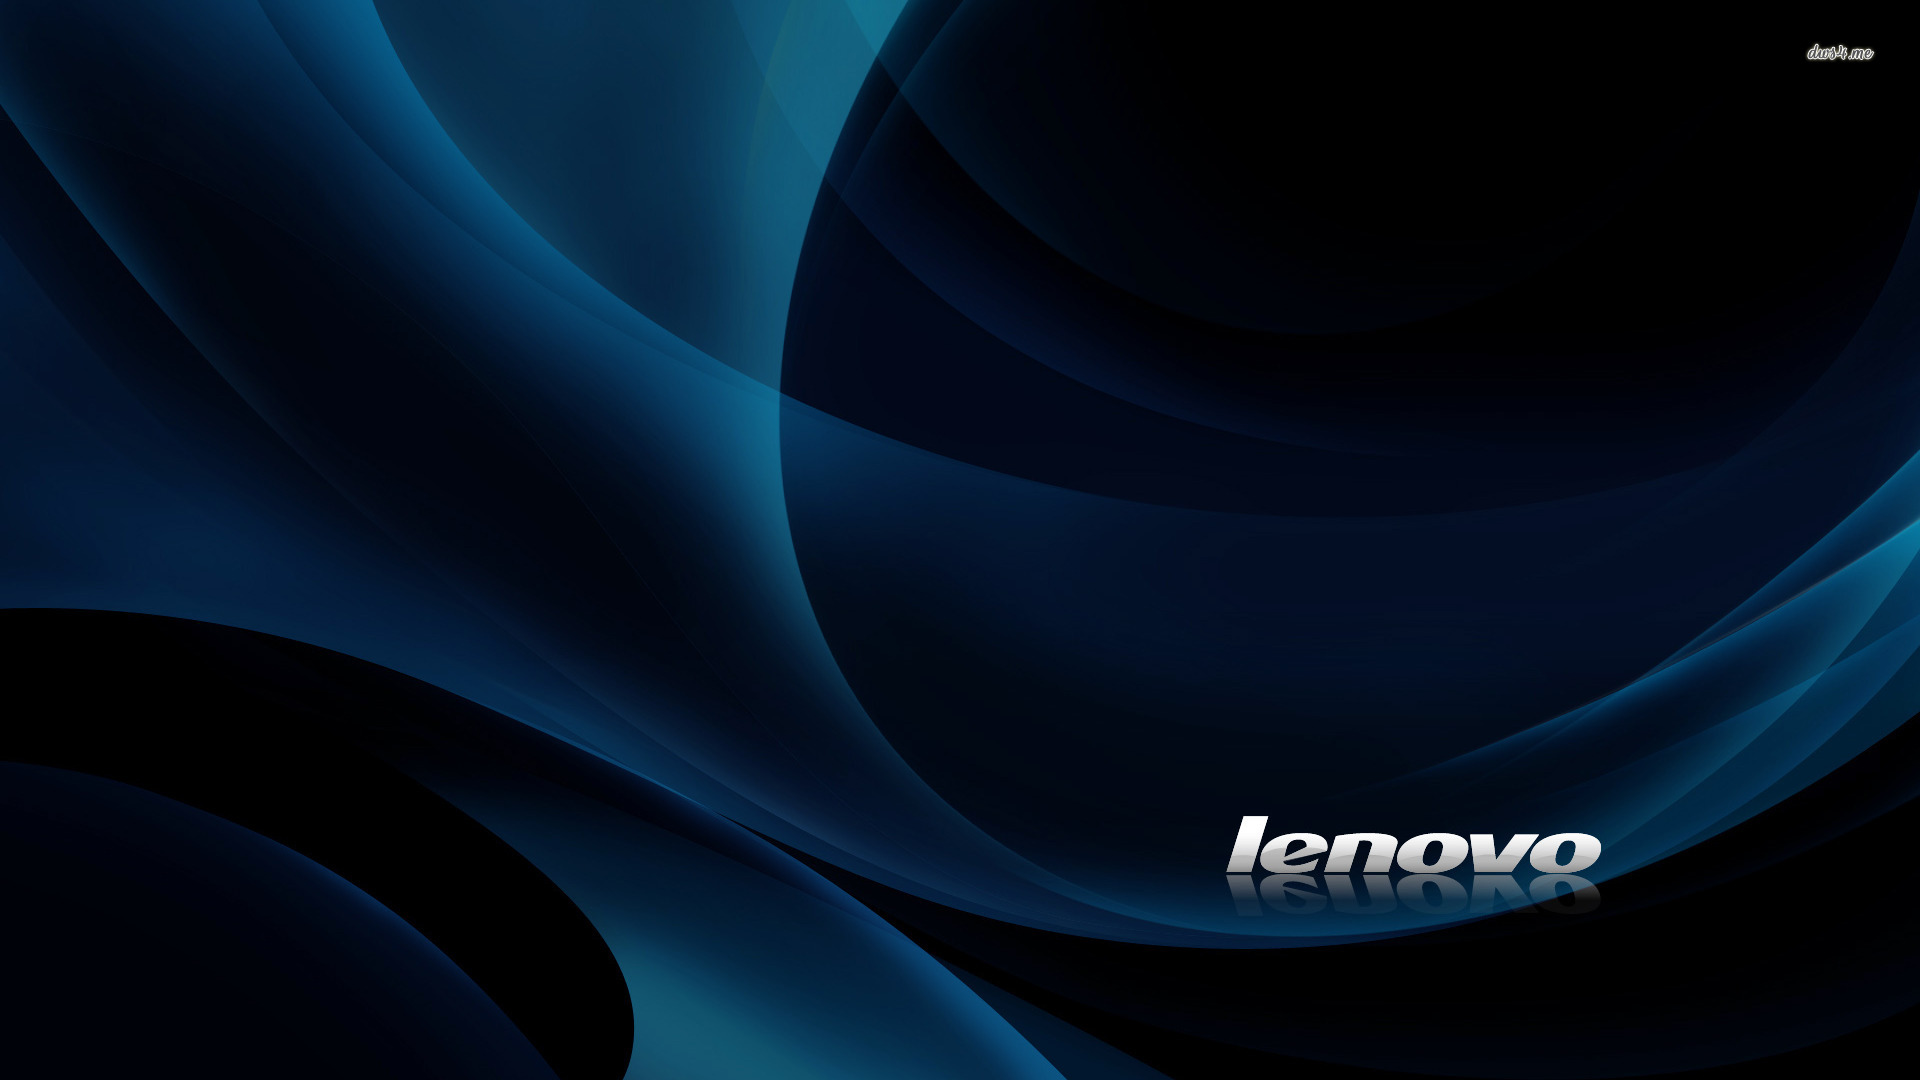 lenovo 4k wallpaper wallpapersafari. Black Bedroom Furniture Sets. Home Design Ideas